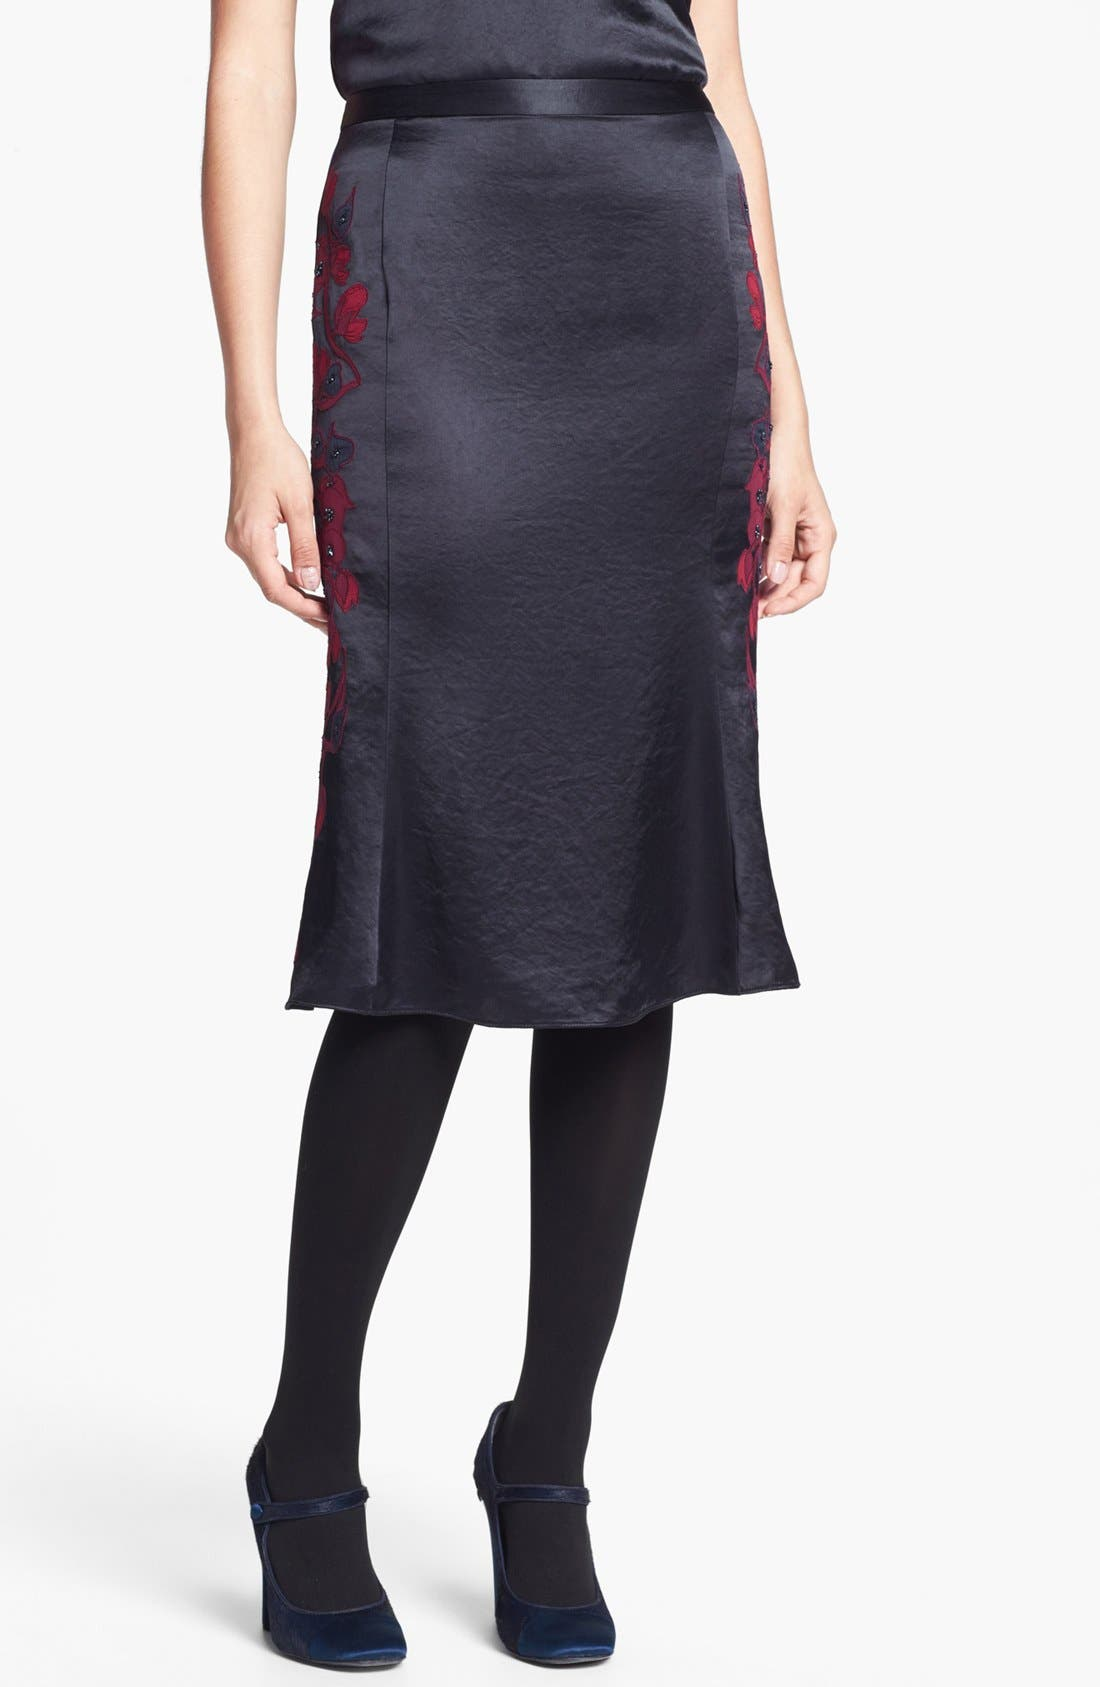 Alternate Image 1 Selected - Tory Burch 'Uma' Embellished Midi Skirt